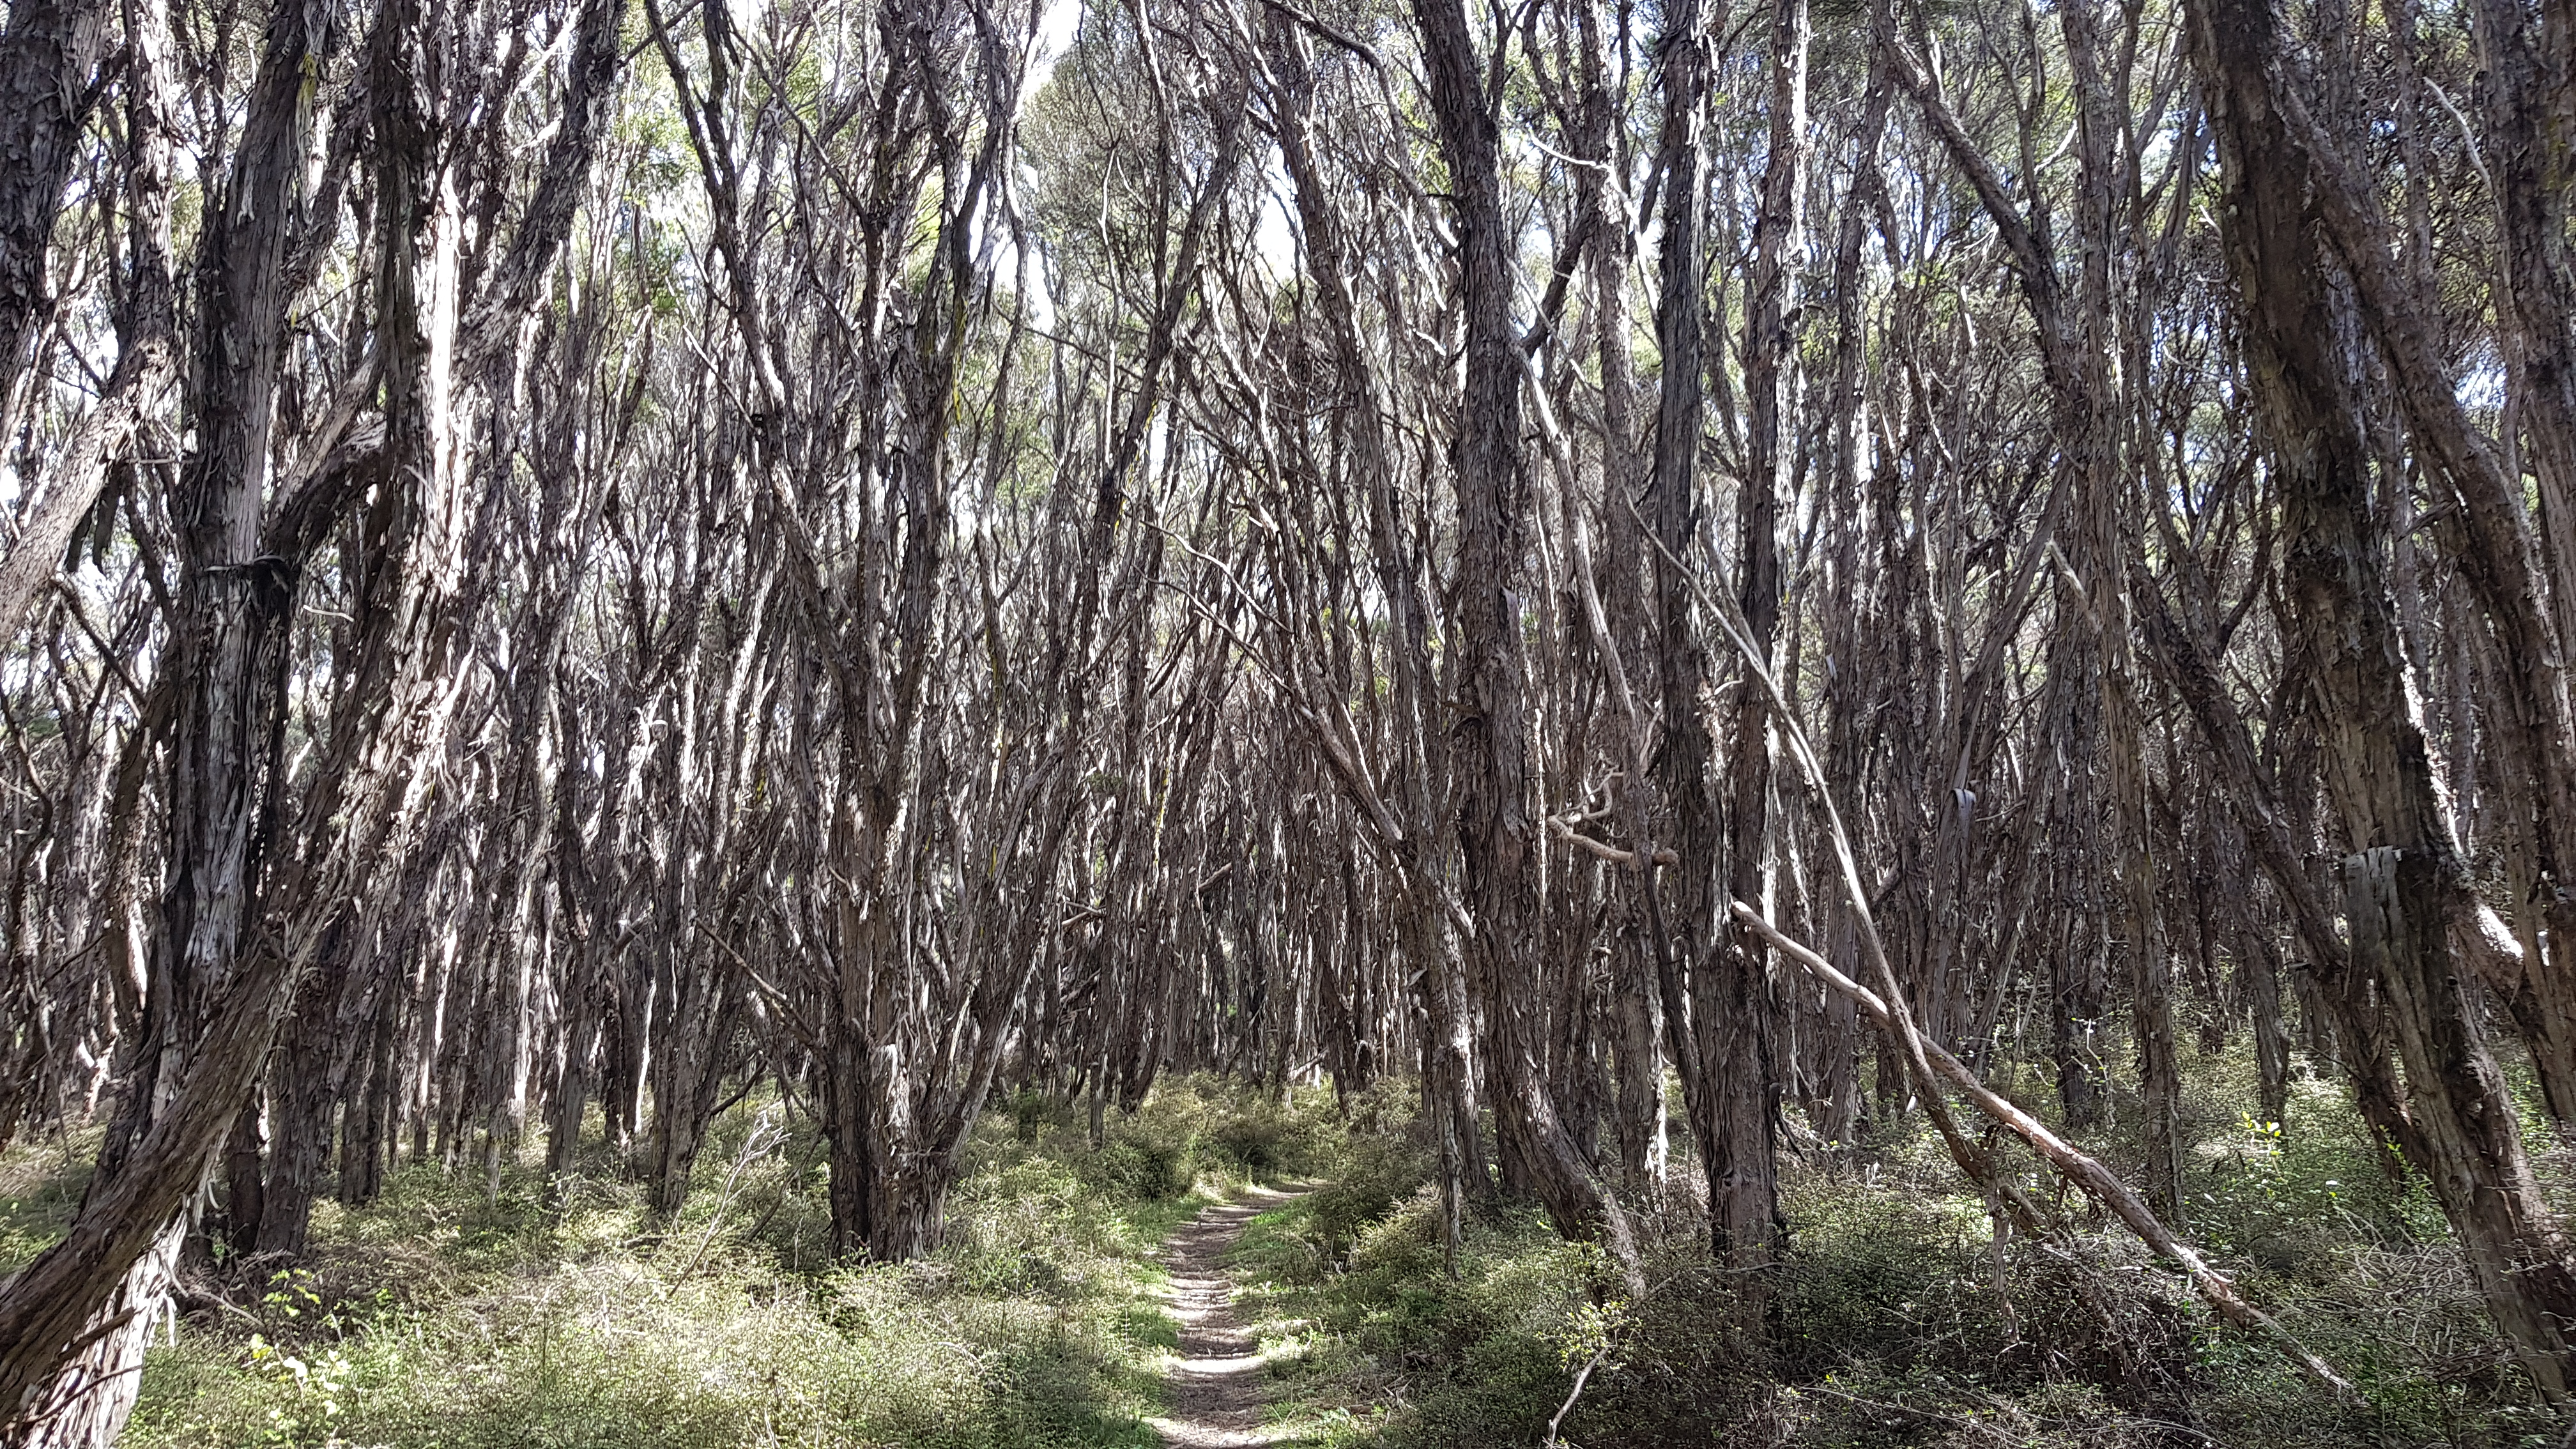 Manuka forest on the Black Birch Track